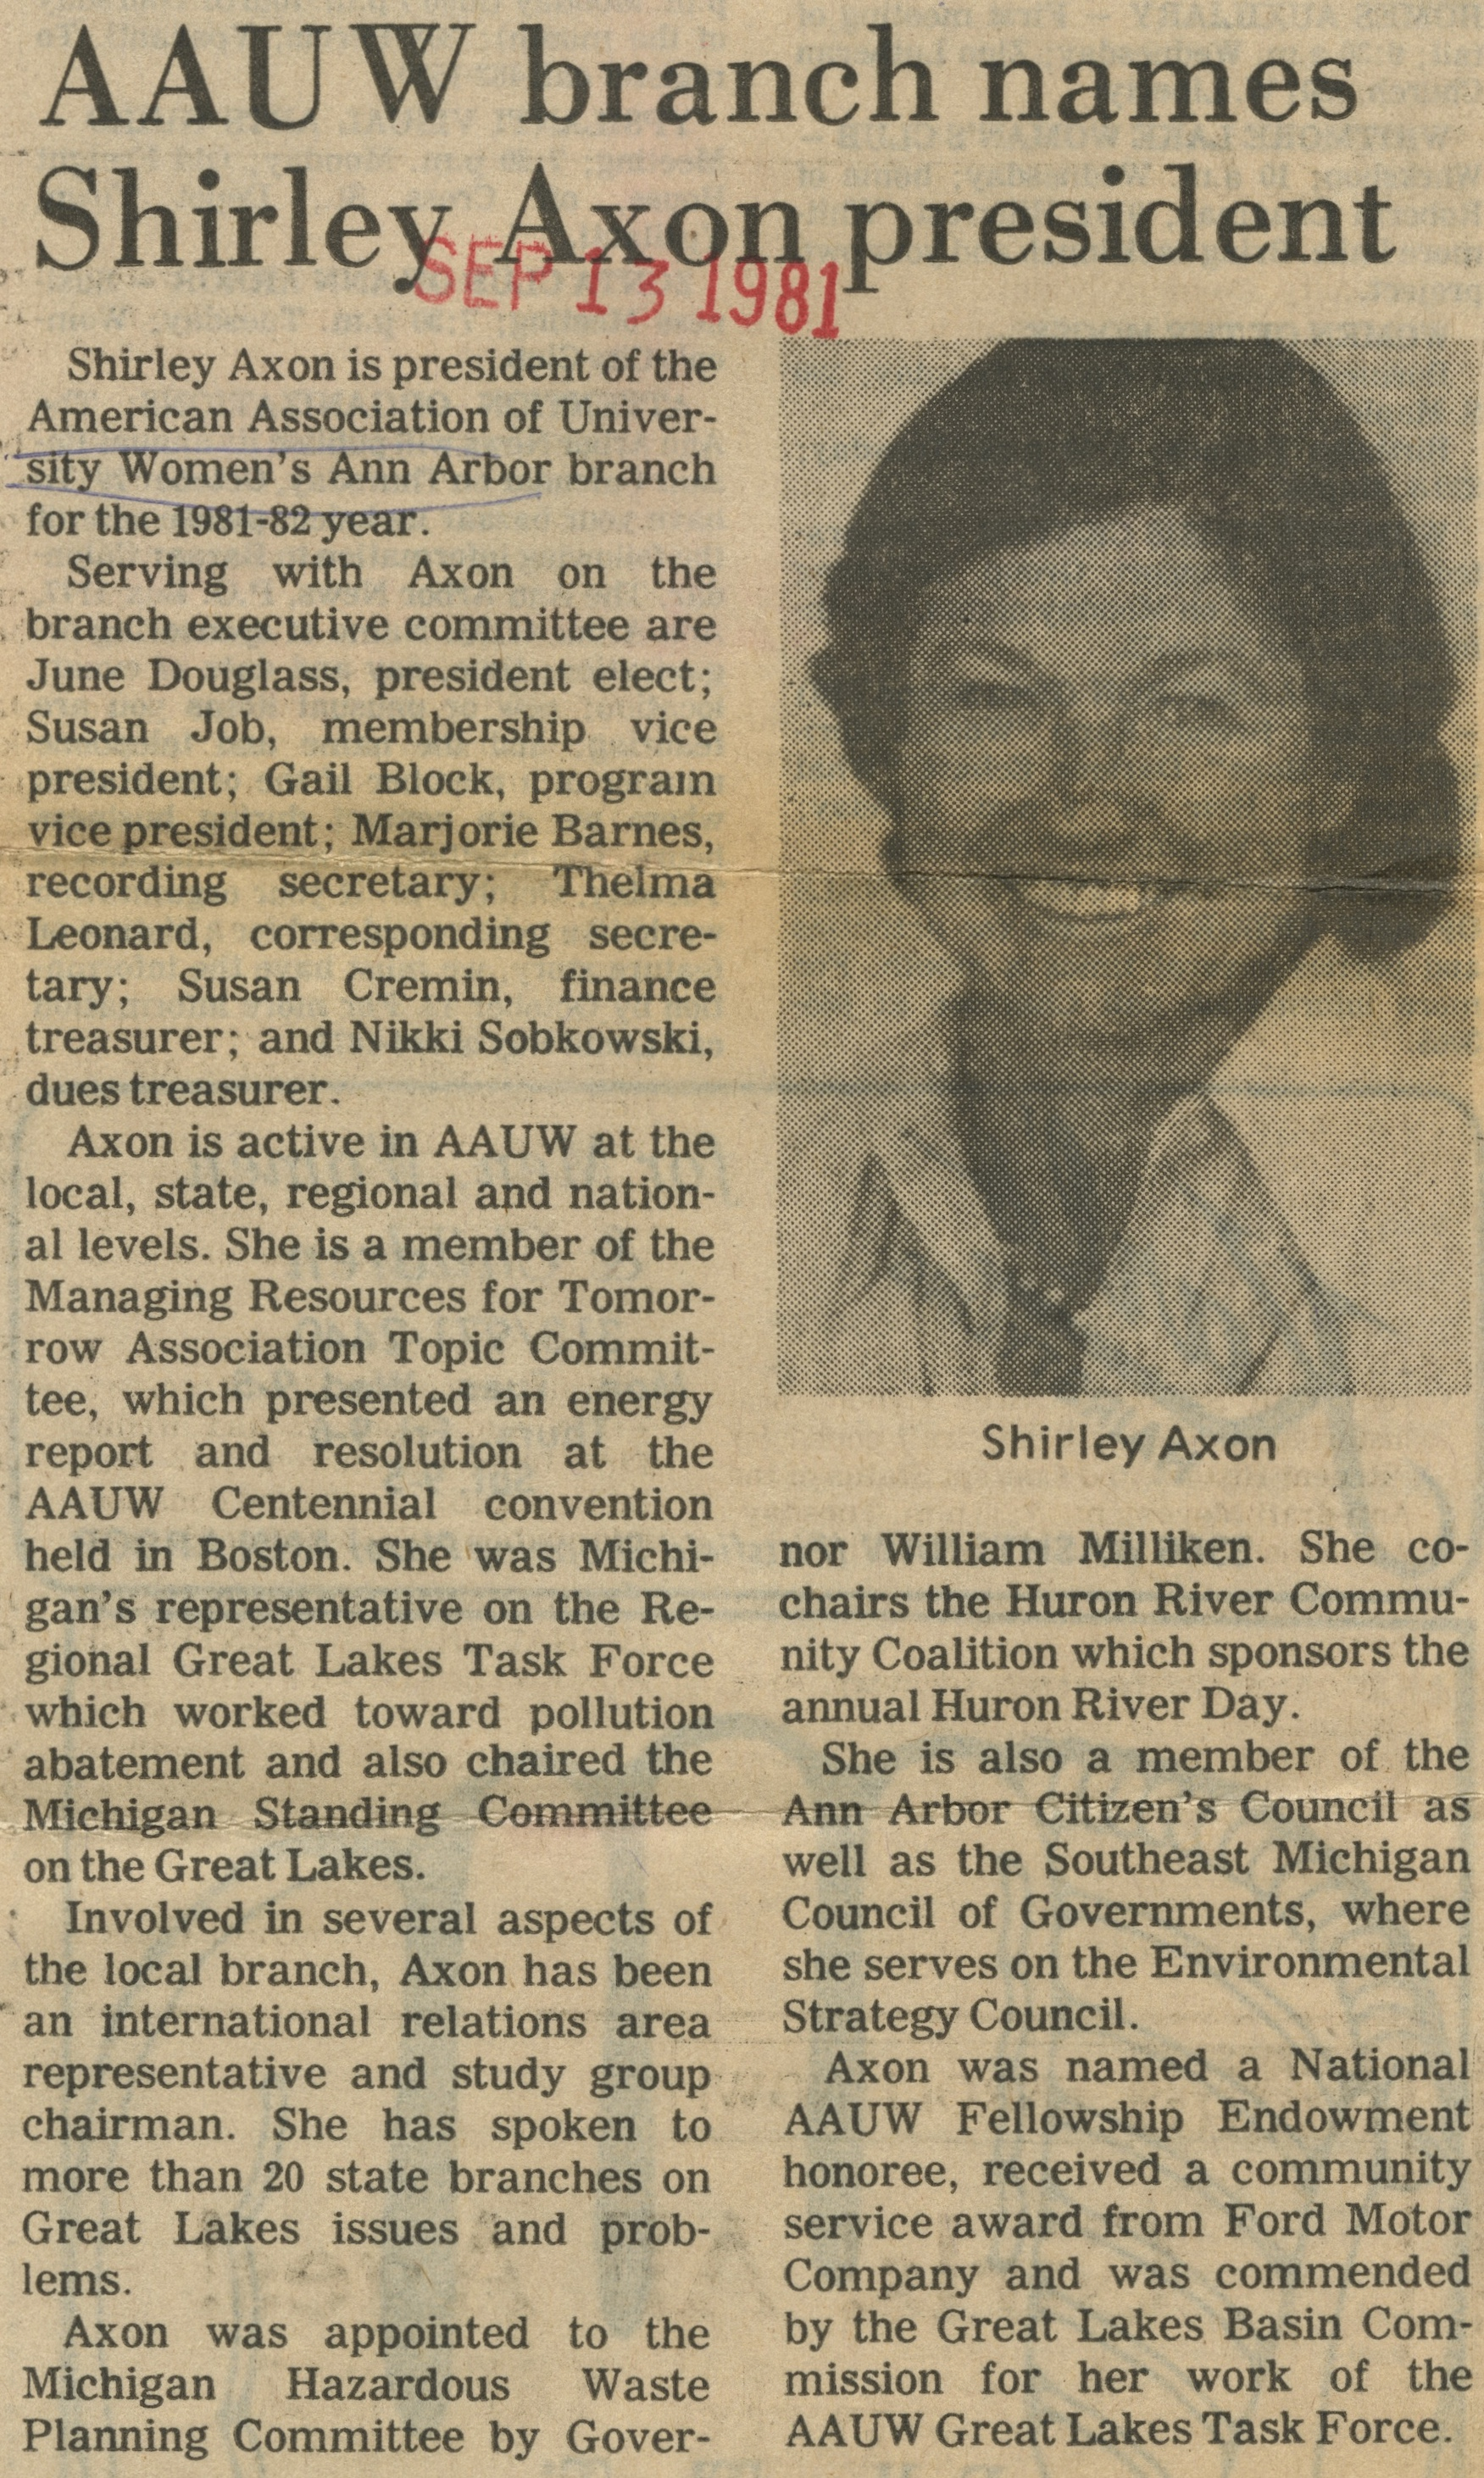 AAUW Branch Names Shirley Axon President image